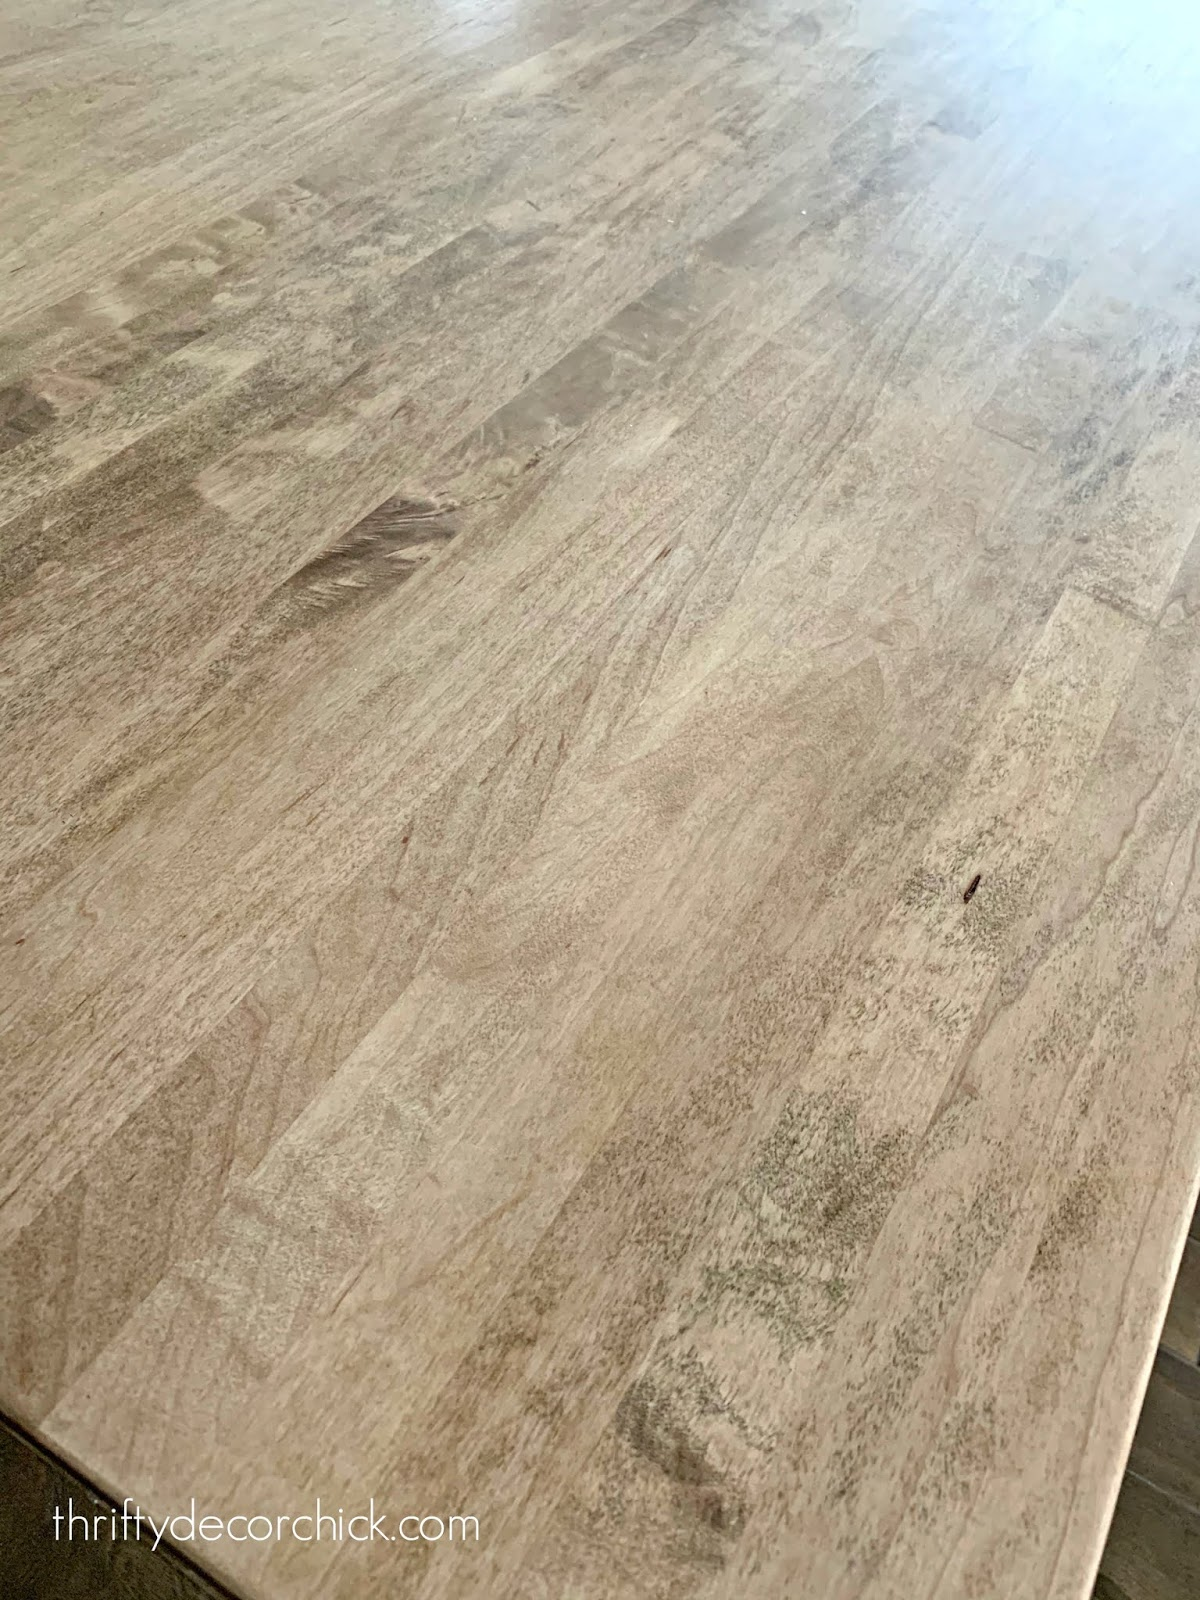 How to protect butcher block countertops